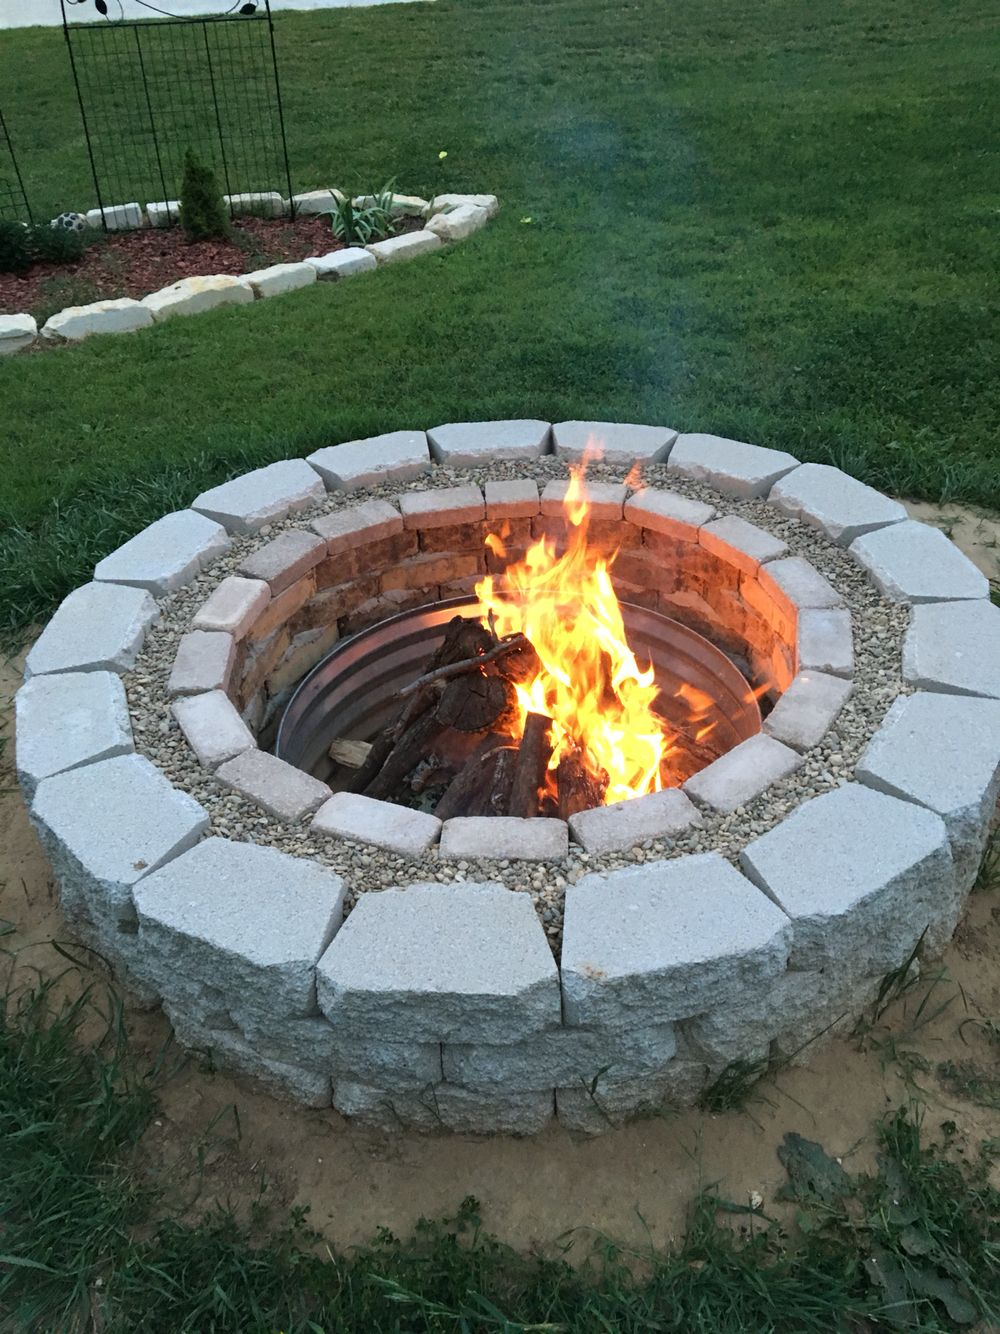 Fire Pit Made From Bricks Grout Gravel And Retaining Wall Blocks Fire Pit Fire Pit Essentials Wall Fires